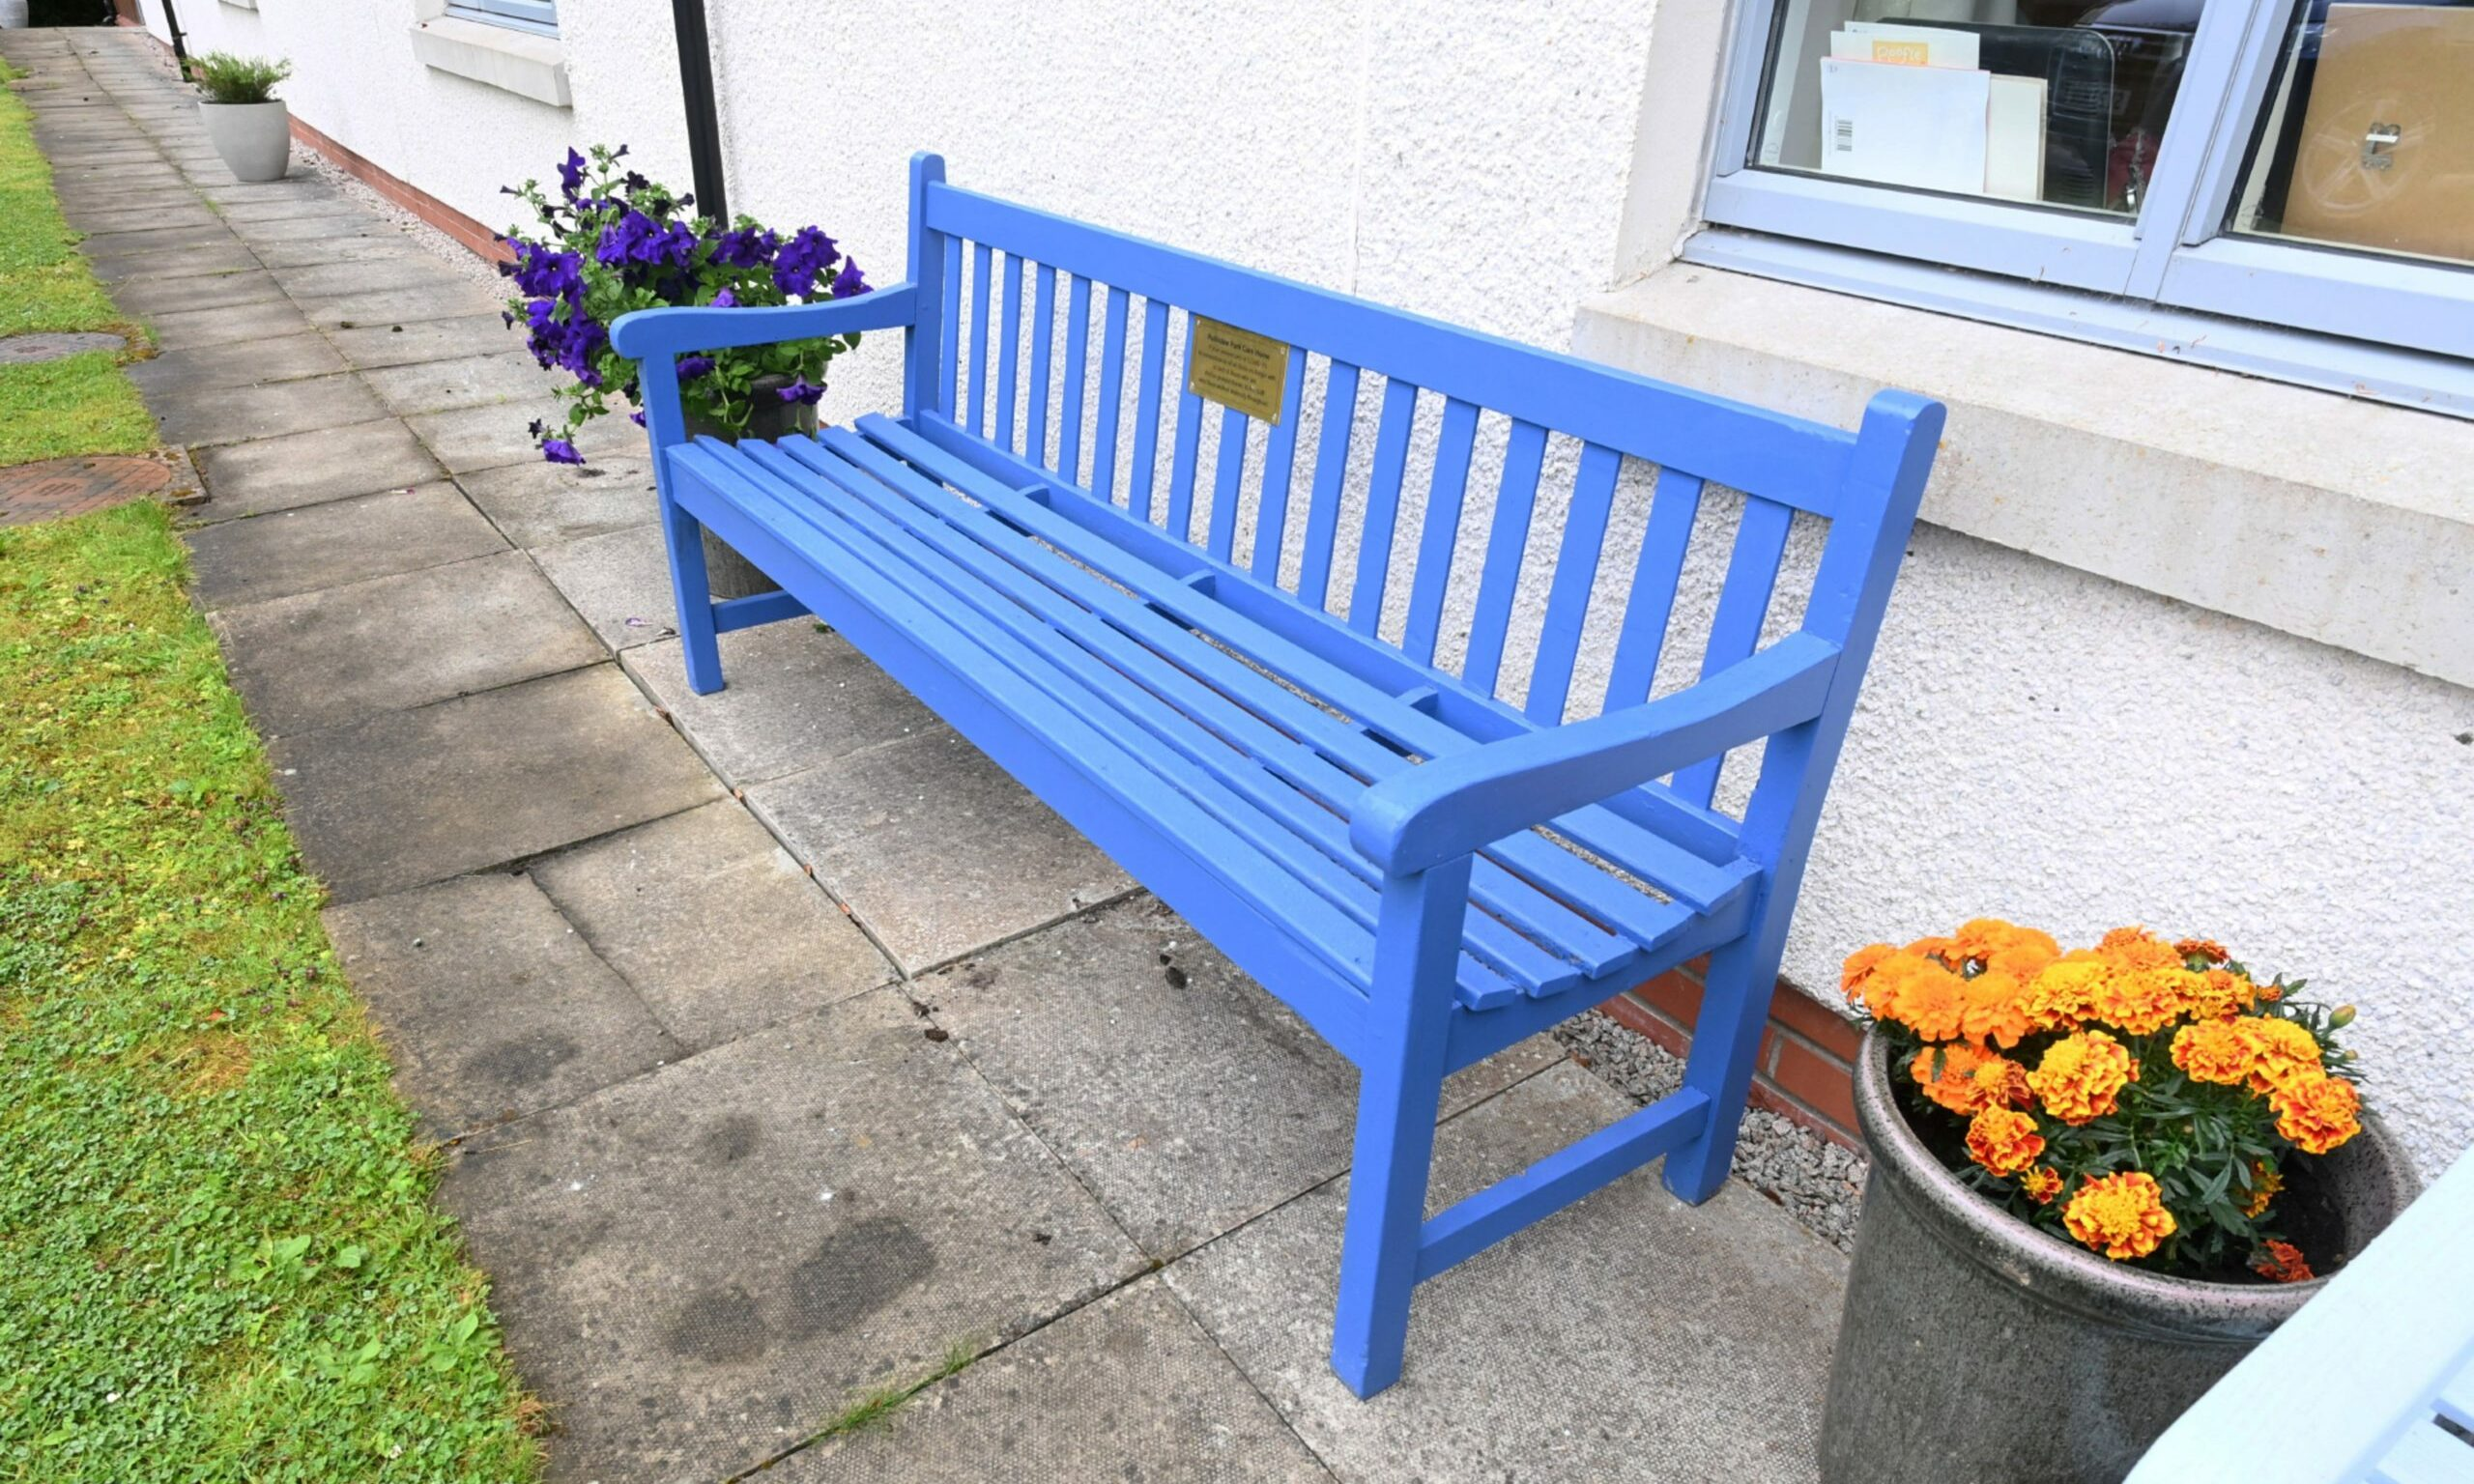 A memorial bench has been dedicated to the staff and residents affected by Covid-19. Picture by Chris Sumner.